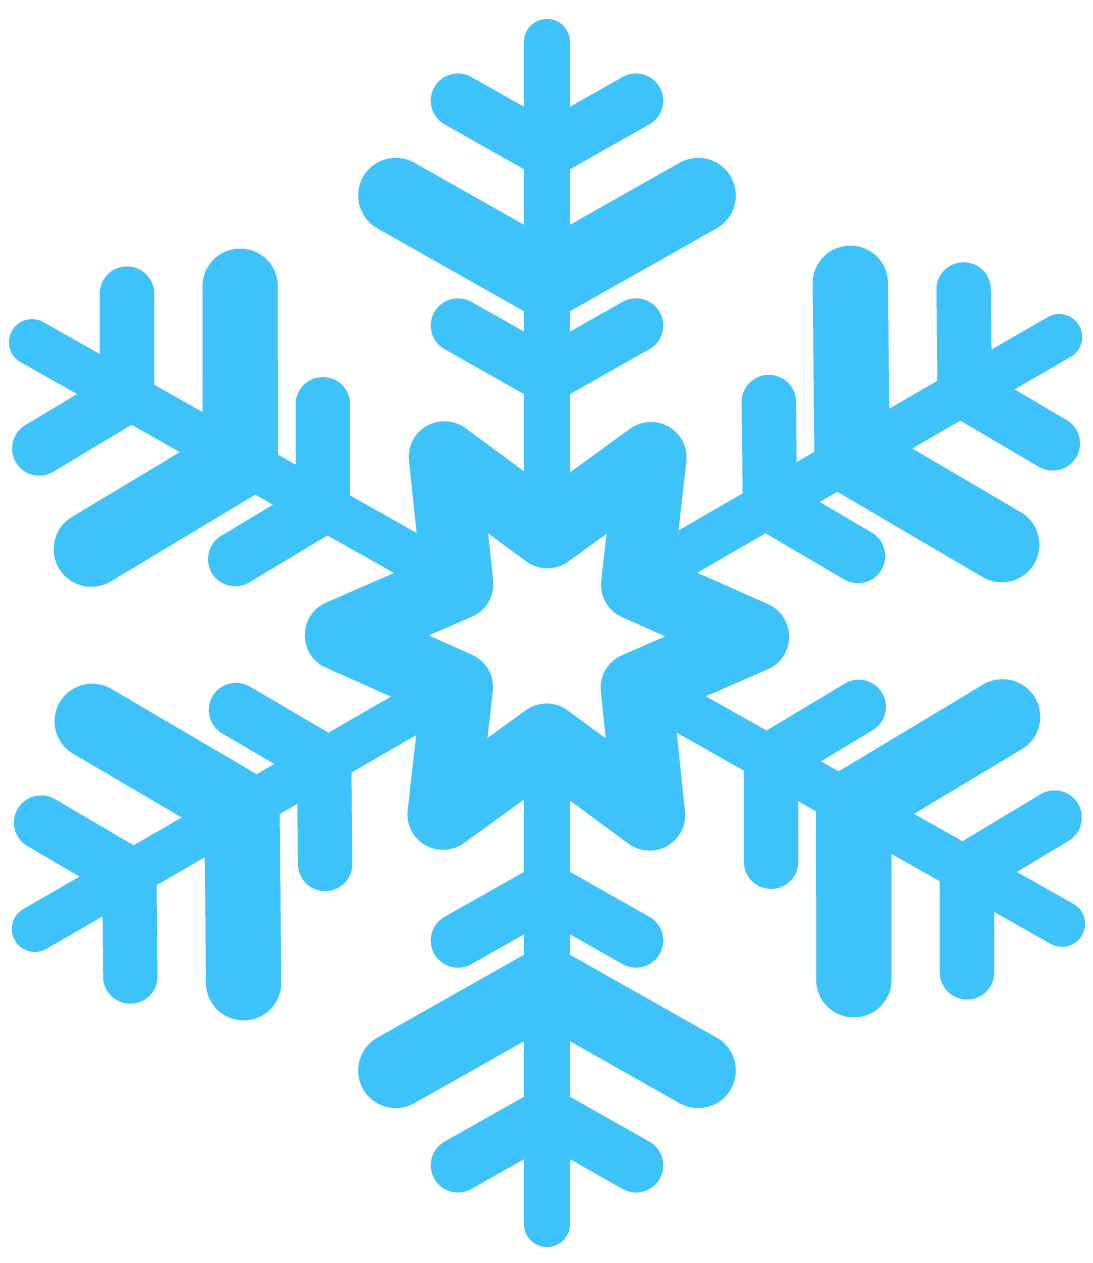 Snowflakes clipart cute. Snowflake clip transparent library